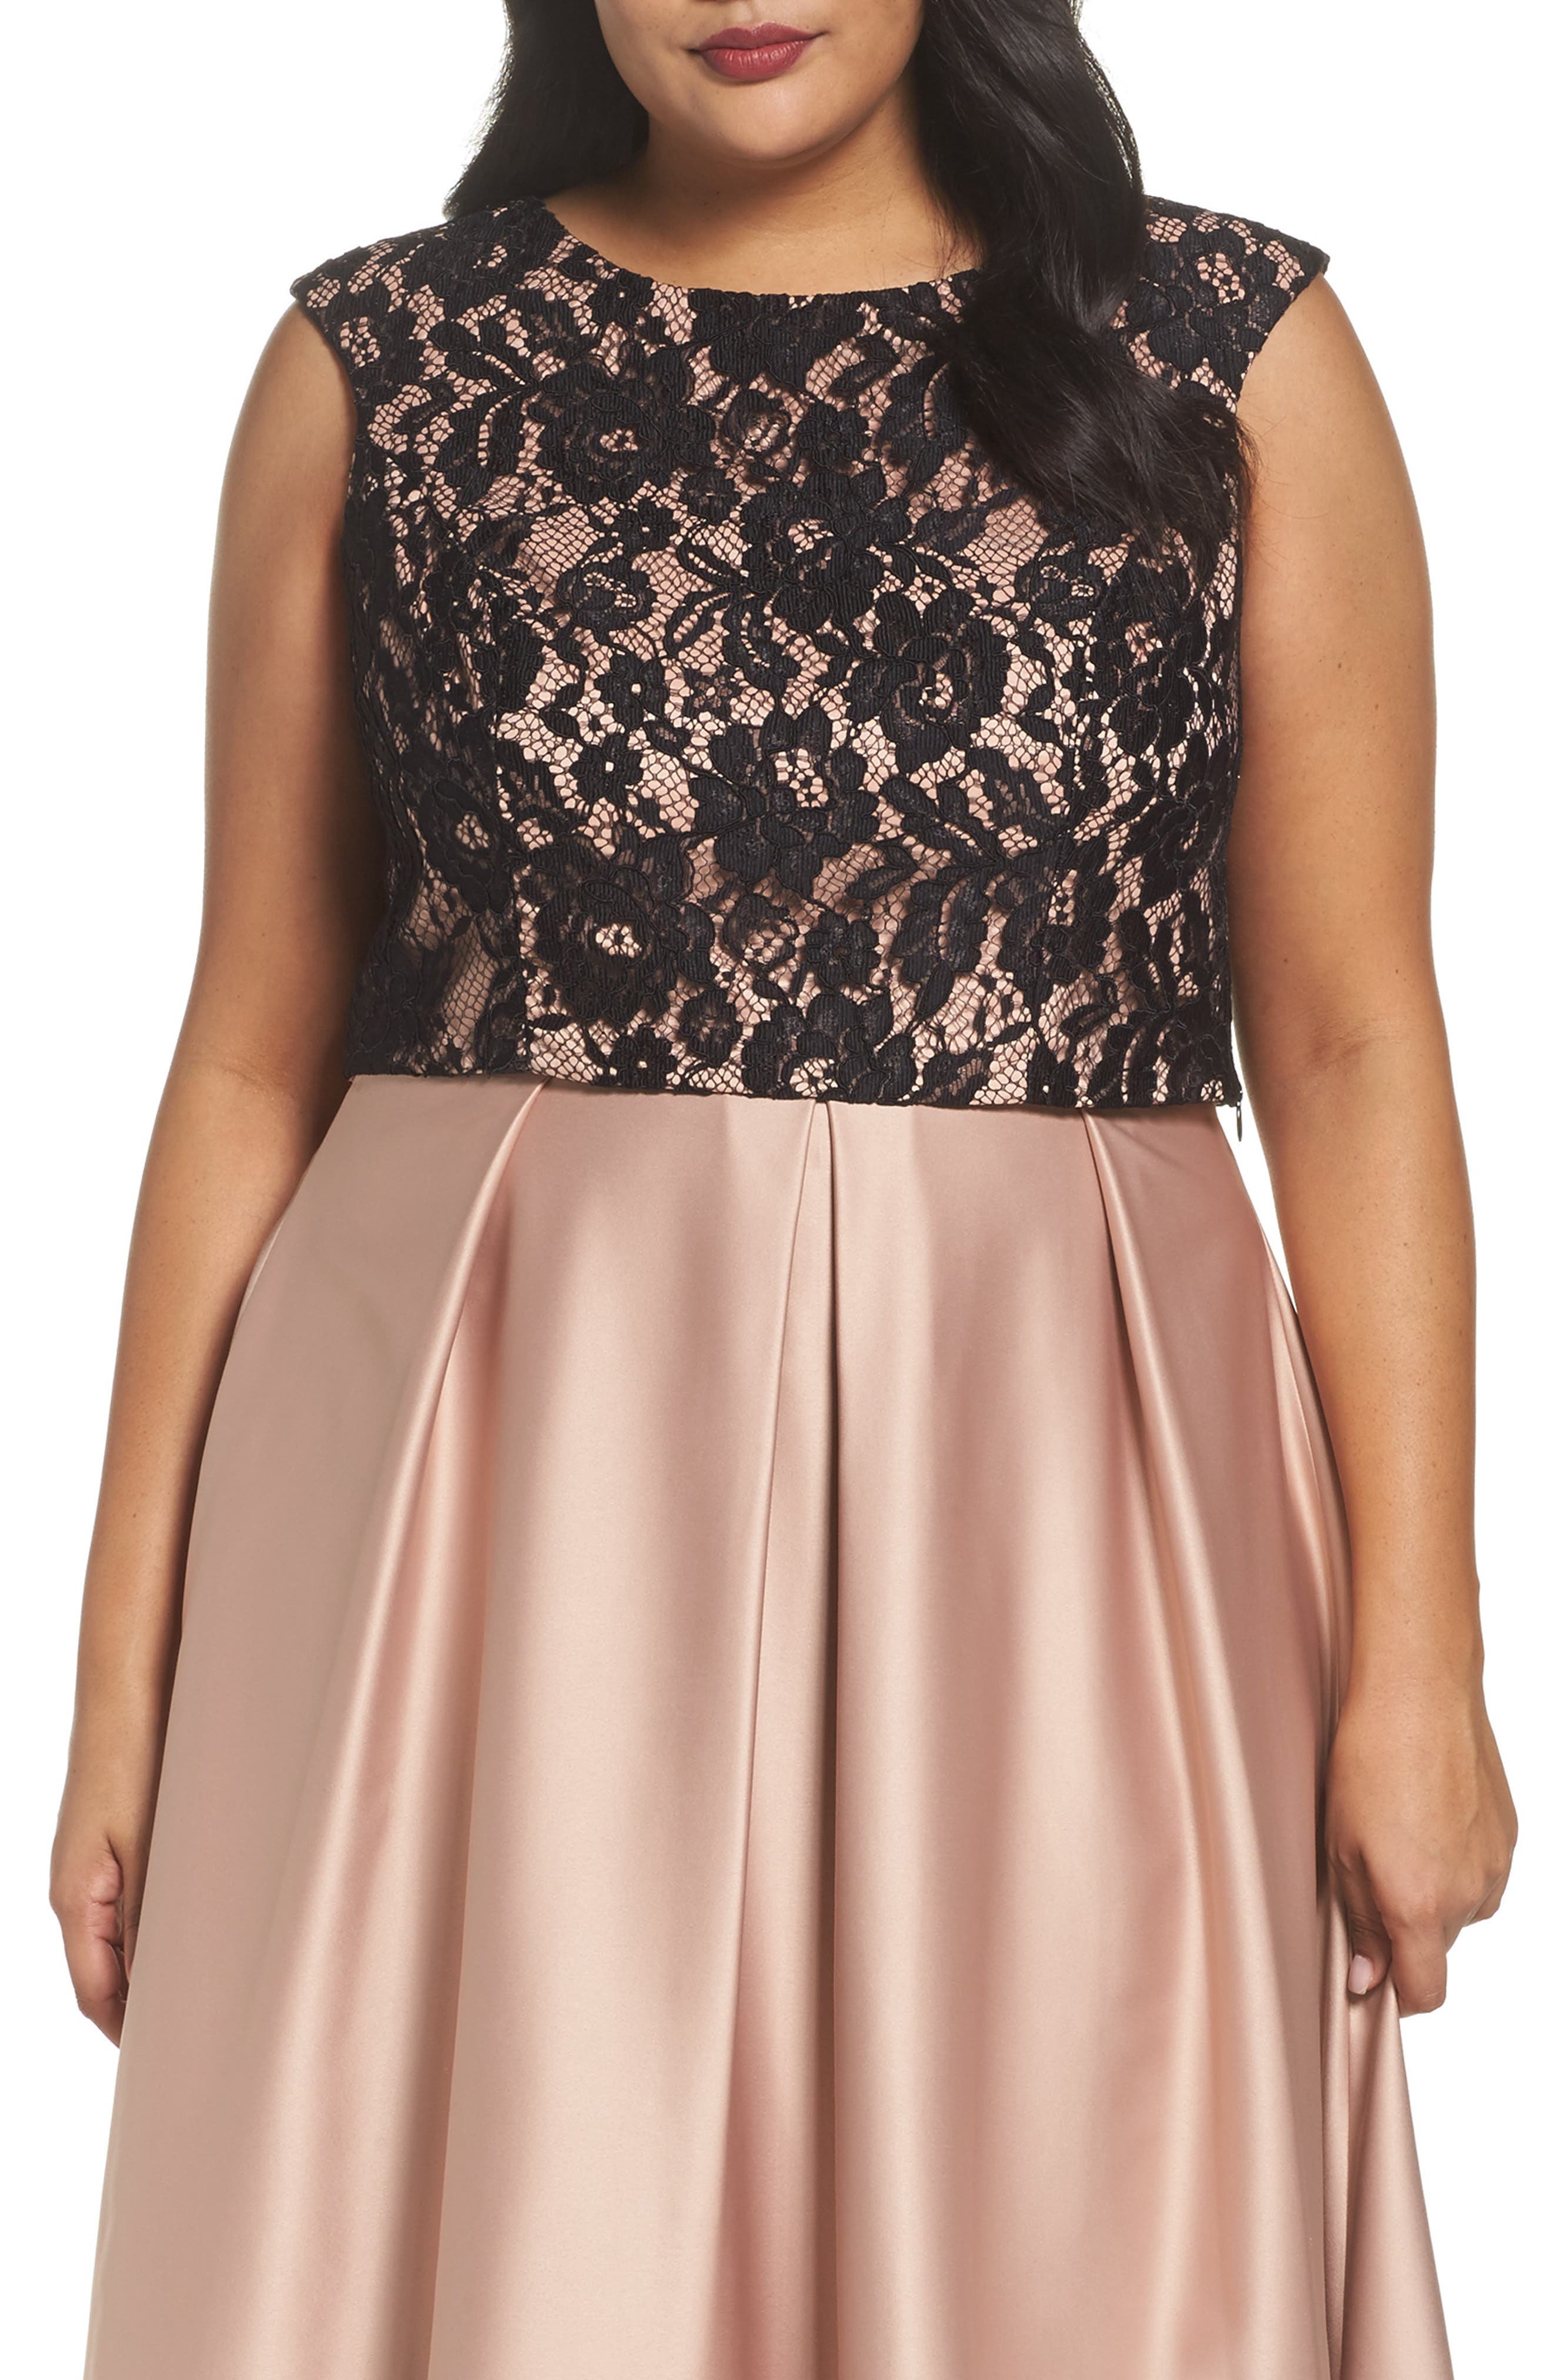 City Chic Decadent Lace Top (Plus Size)